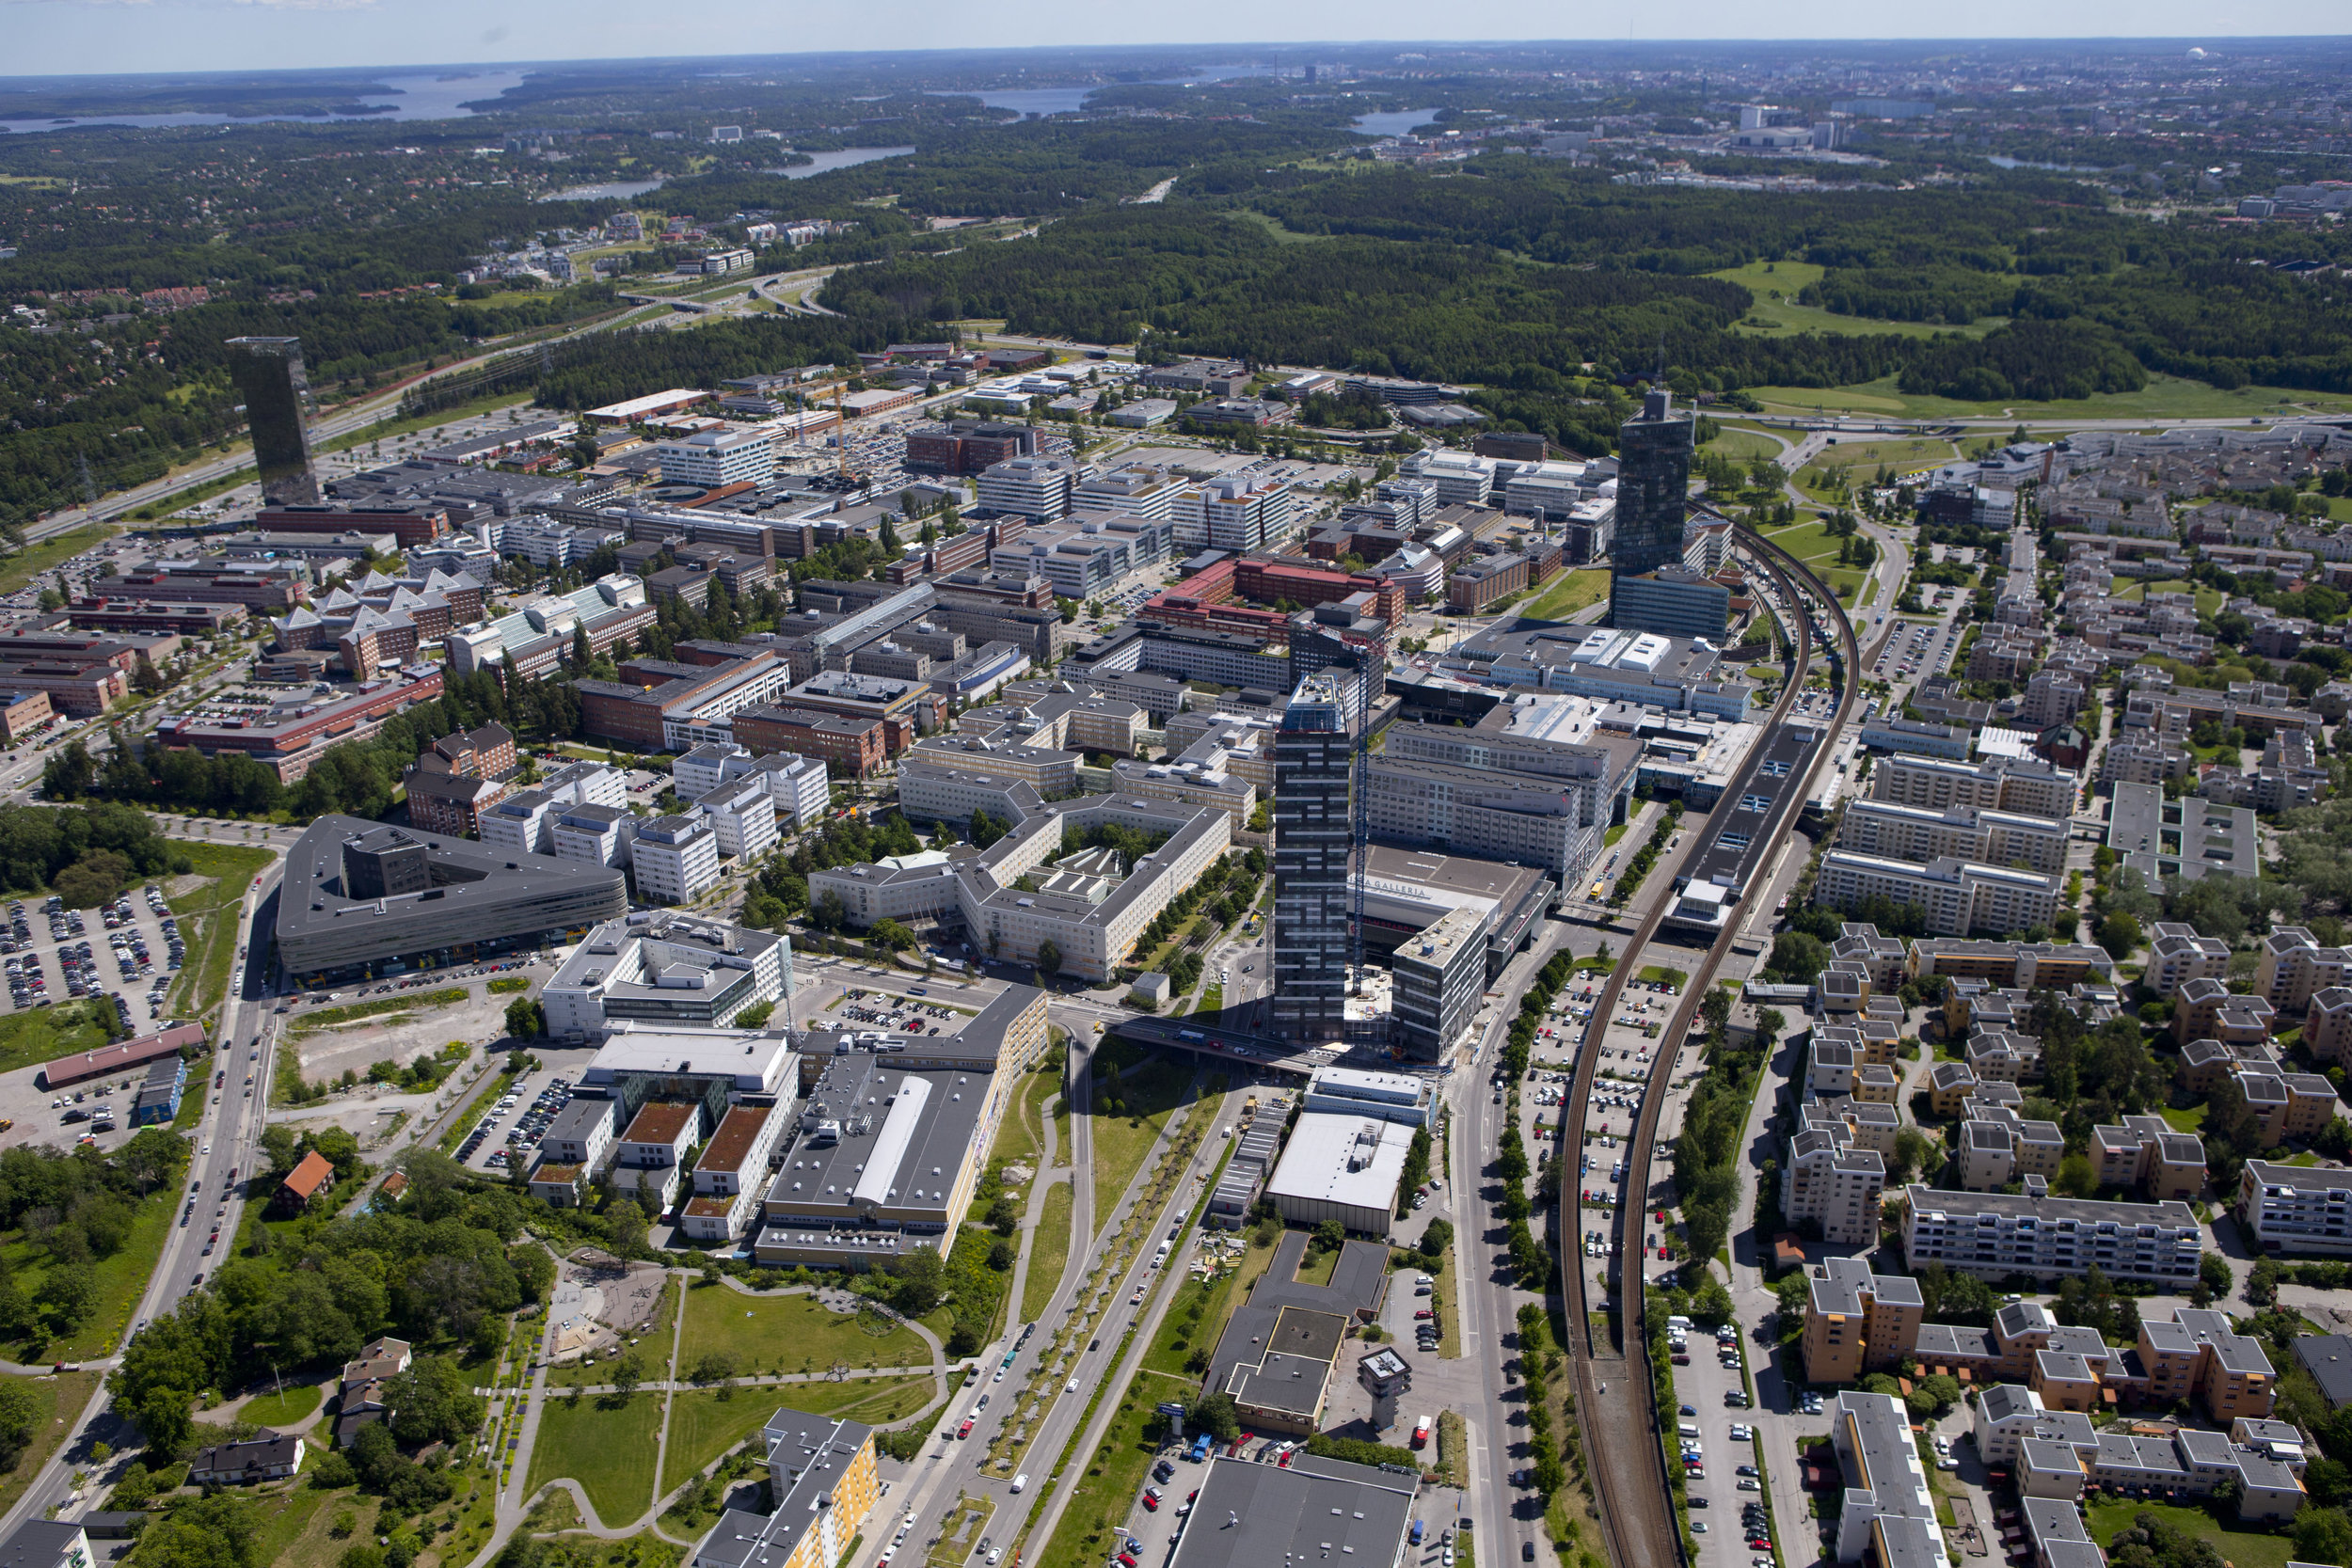 Kista Science City, located just north of Stockholm city.